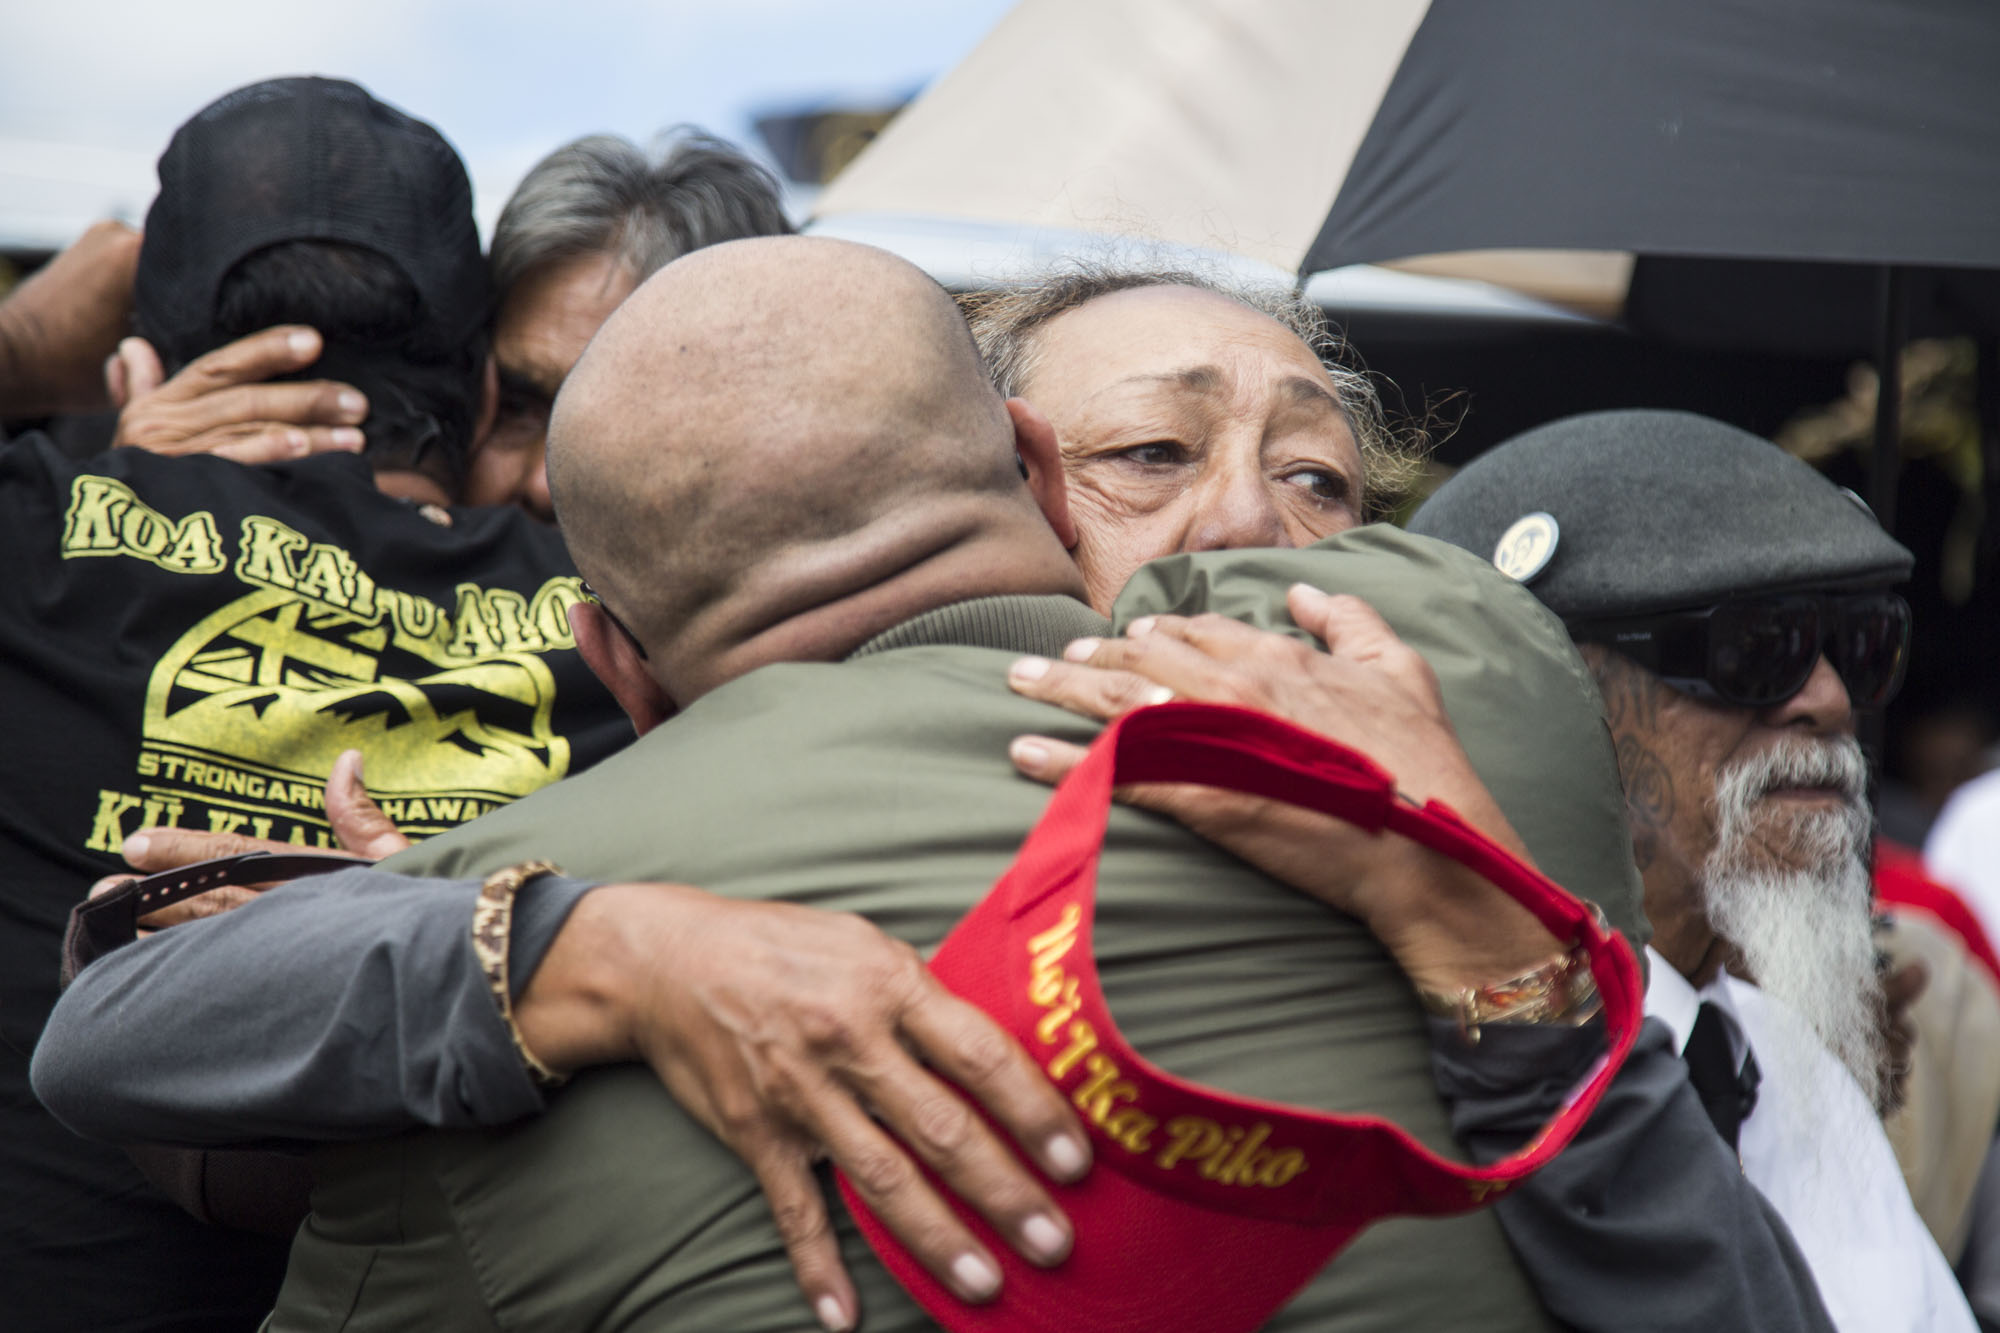 """Nohea Kalima, one of the 38 kūpuna arrested for protecting Maunakea, hugs a family member of George Helm after giving hoʻokupu. Helm was a beloved musician and Native Hawaiian activist who occupied Kahoʻolawe alongside eight other activists in 1976. Together, Walter Ritte, Emmett Aluli, Ellen Miles, Karla Villalba, Steve Morse, Kimo Aluli, Gail Kawaipuna Prejean Ian Lind, and George Helm were known as the """"Kahoʻolawe Nine"""". They successfully stood against the militaryʻs use of the island as a bombing range. Both Helm and activist Kimo Mitchell disappeared in 1977 while they were out at sea. Today, the bombing has ceased and the island is in the process of restoration."""